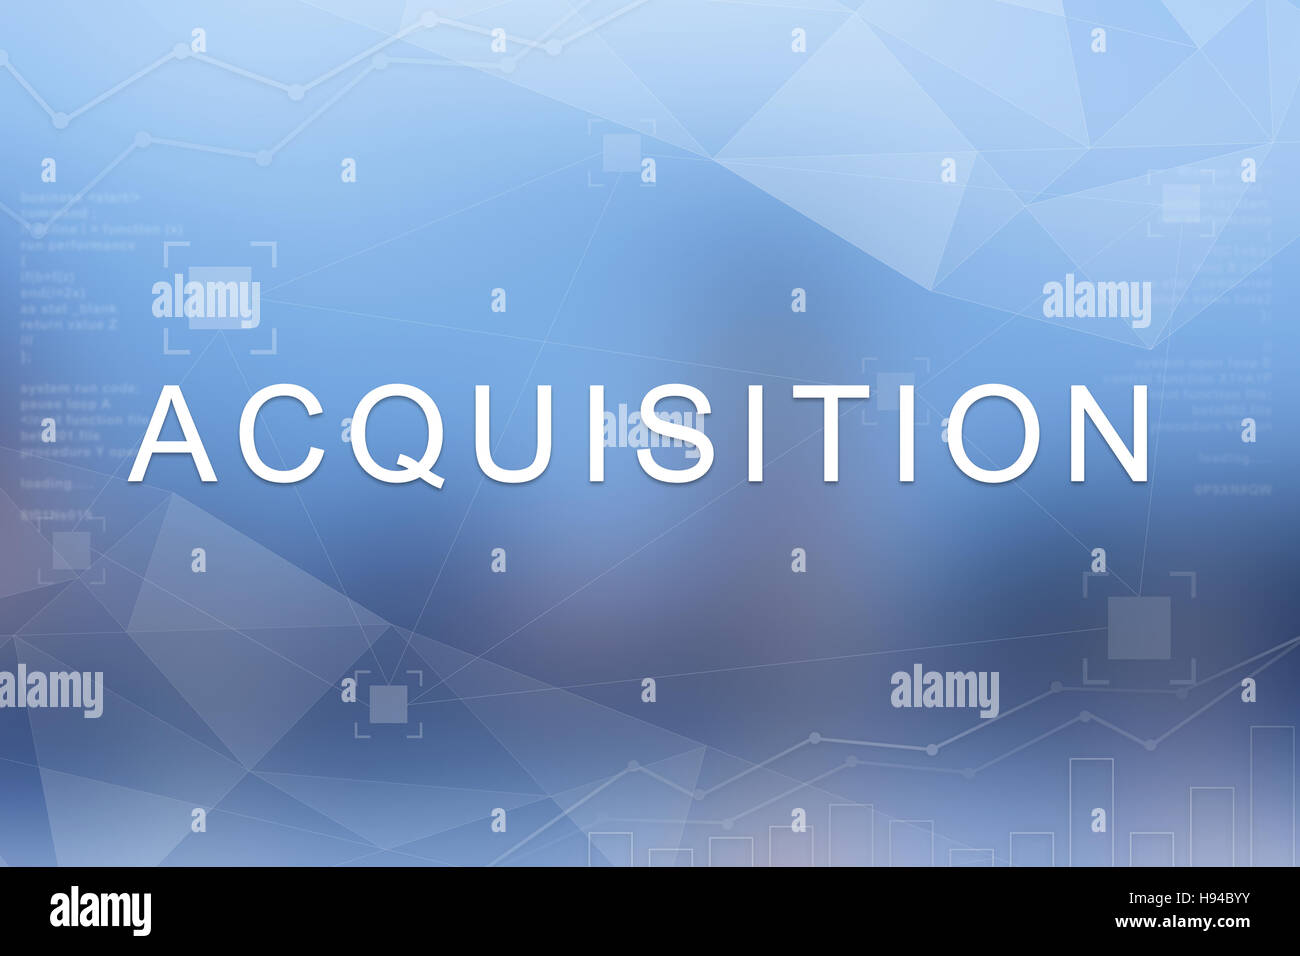 Acquisition word on blue blurred and polygon background - Stock Image